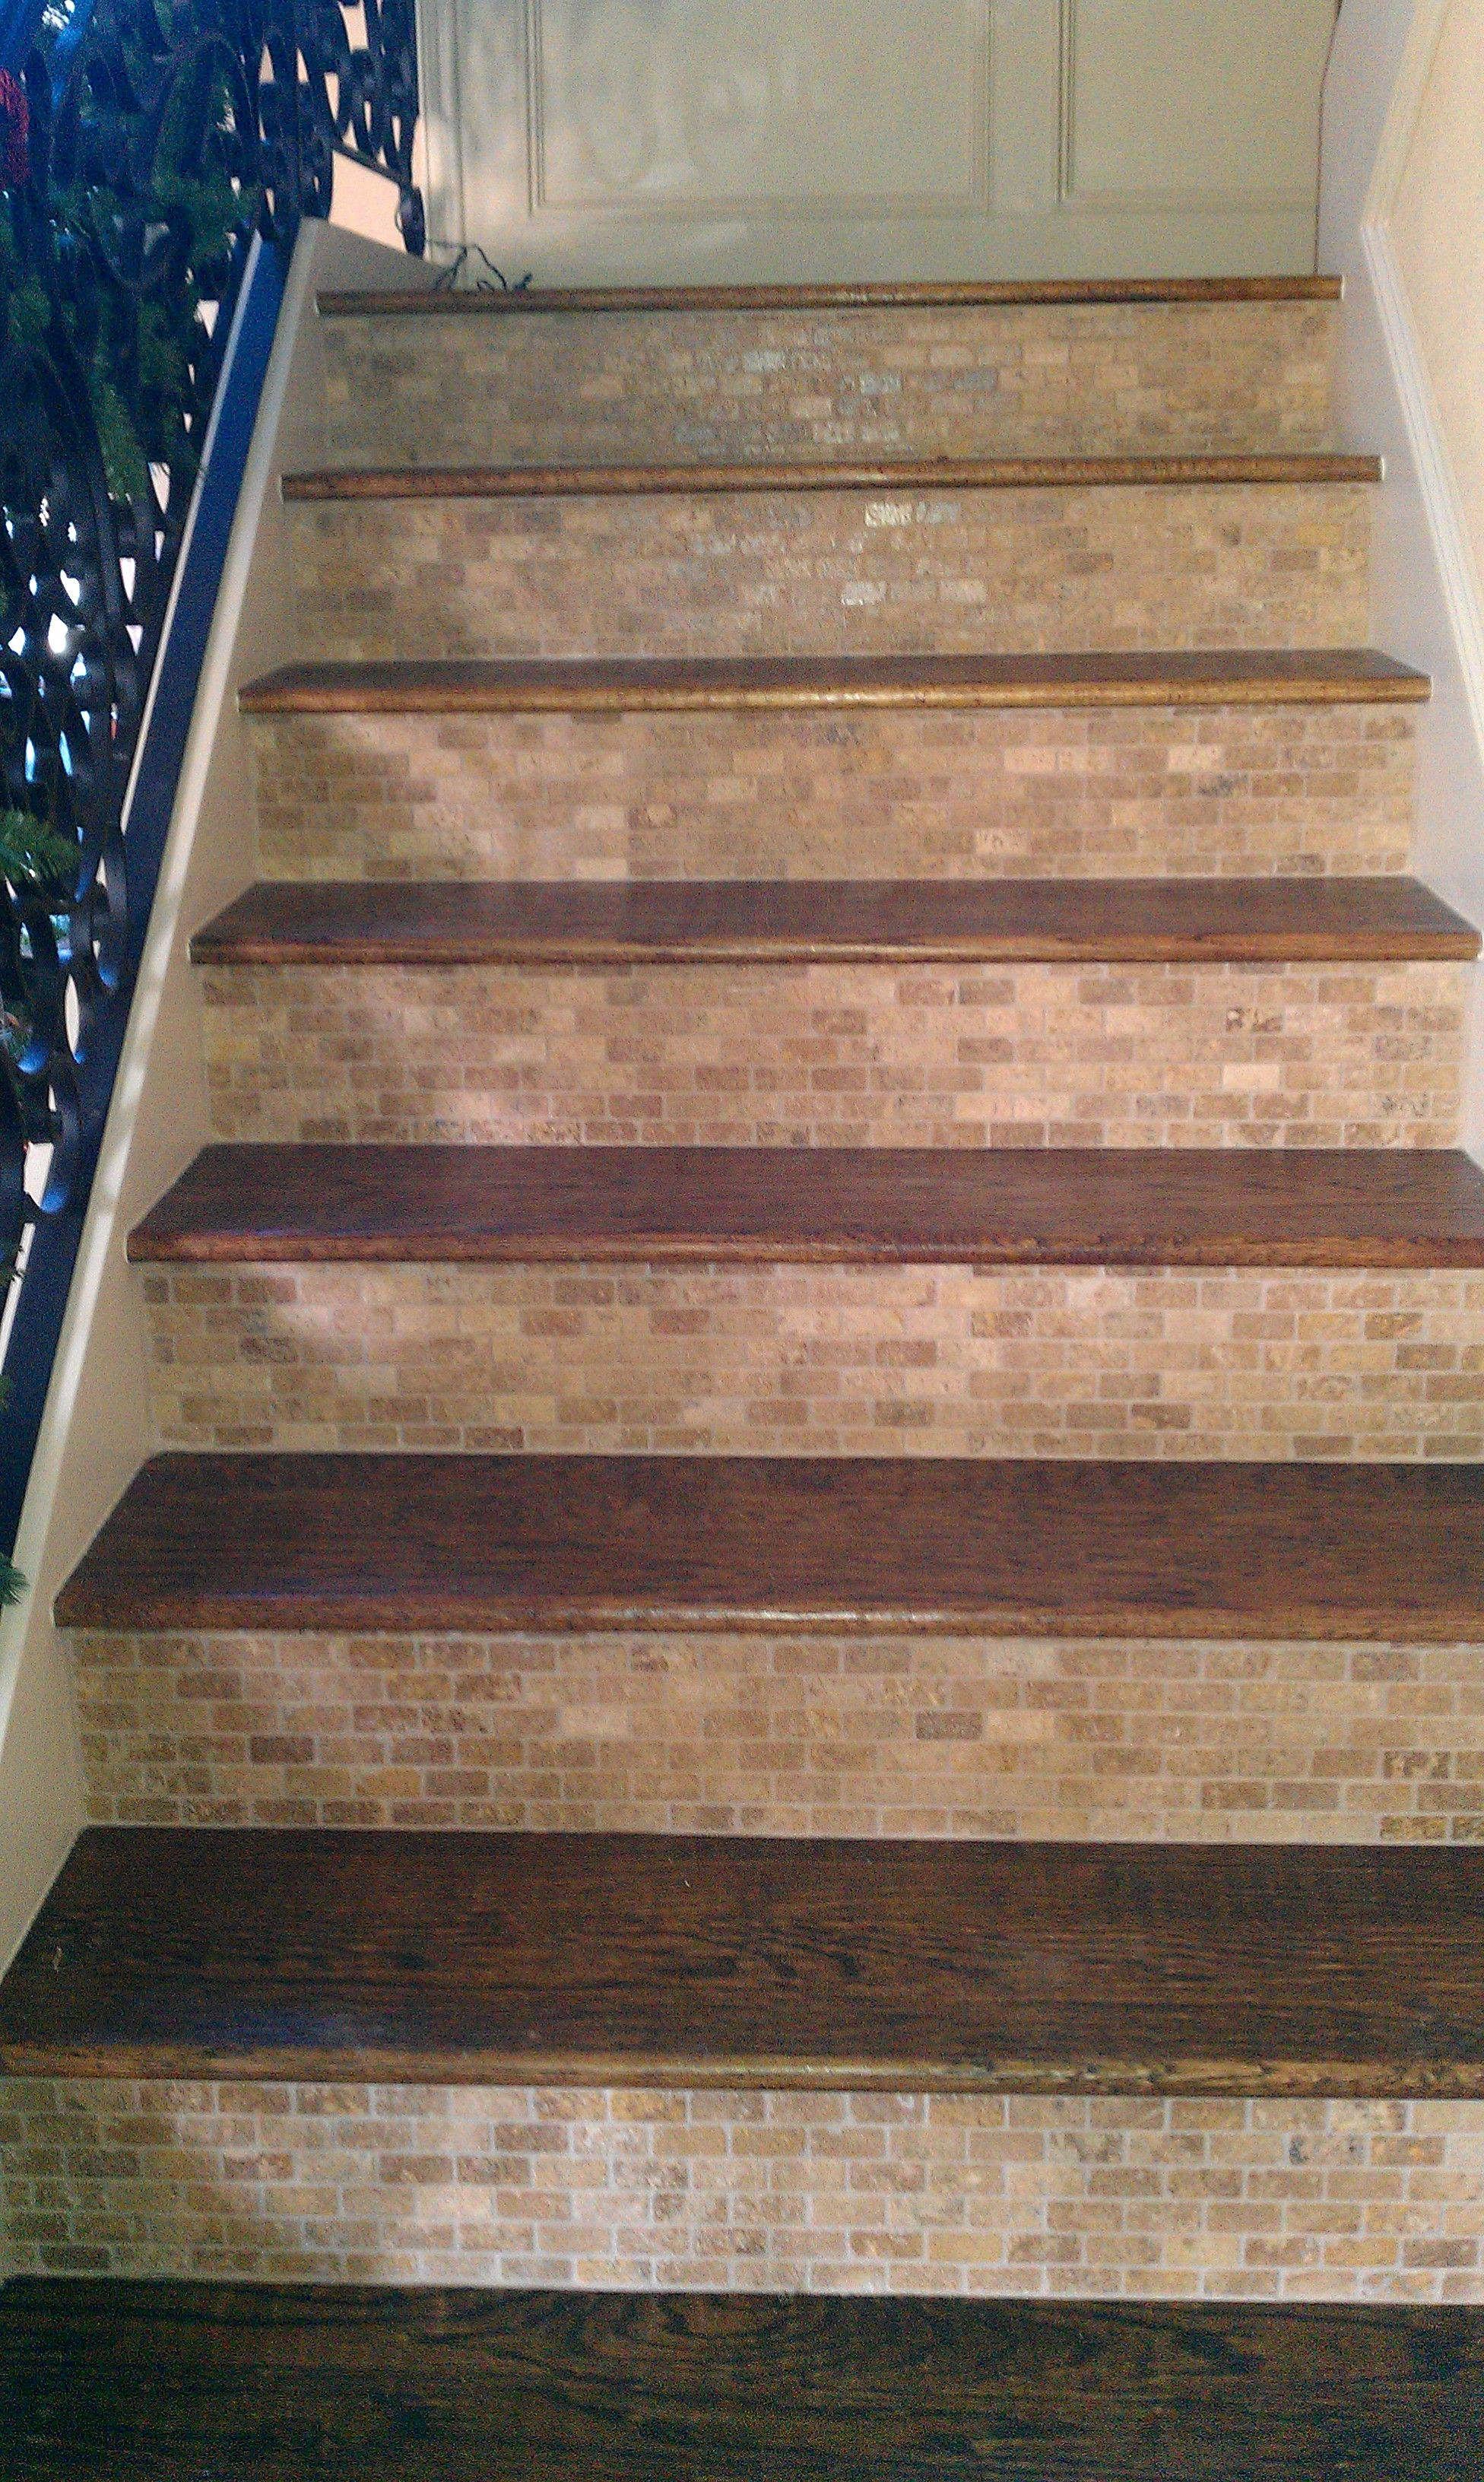 Wood And Tile Stairs Check Out Deck Railing At Http://awoodrailing.com